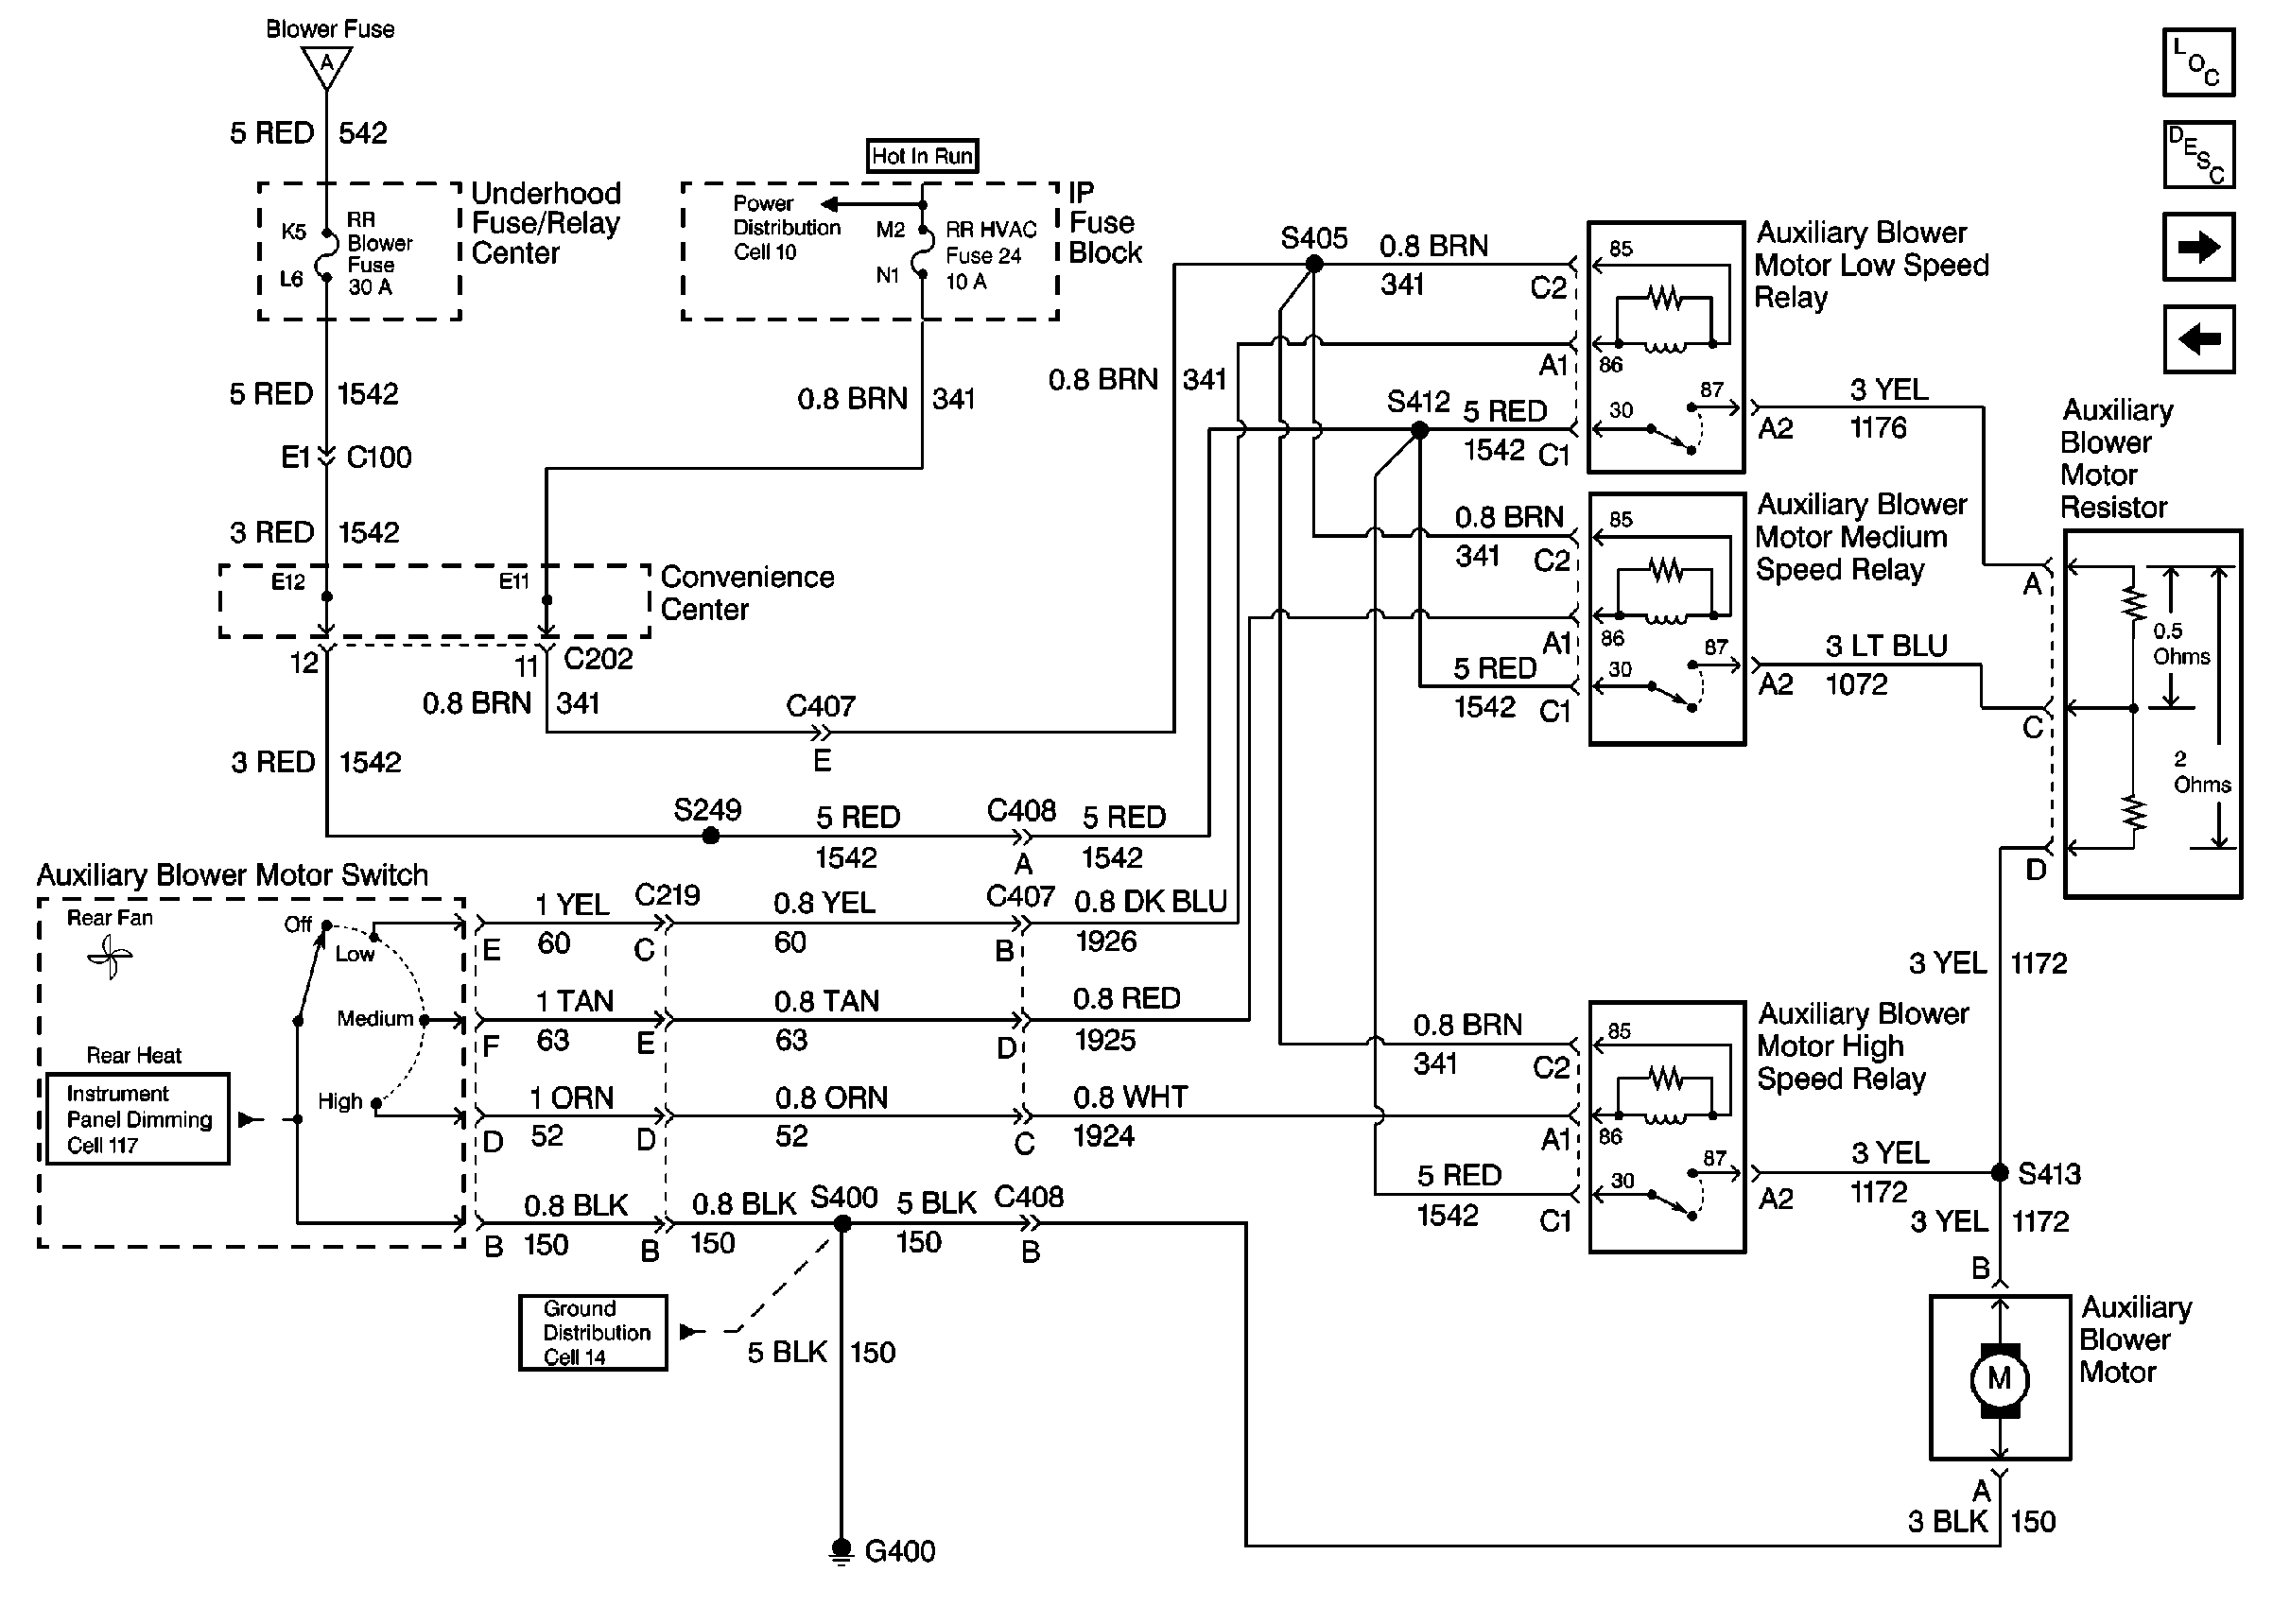 2001 Chevrolet Express 3500 Wiring Diagram 350 Engine Parts Diagram Wiring Diagram Schematics